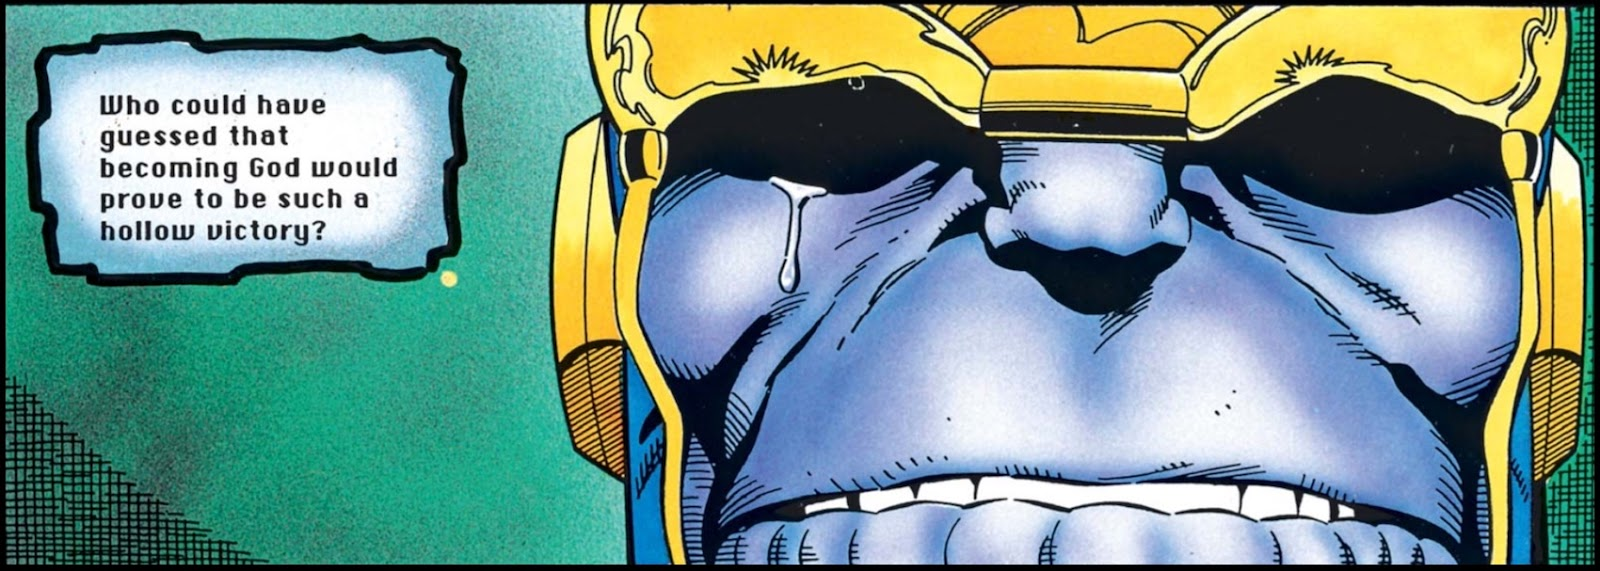 'Who could have guessed that becoming God would prove to be such a hollow victory?' asks caption beside extreme close-up of Thanos' face as a single tear falls